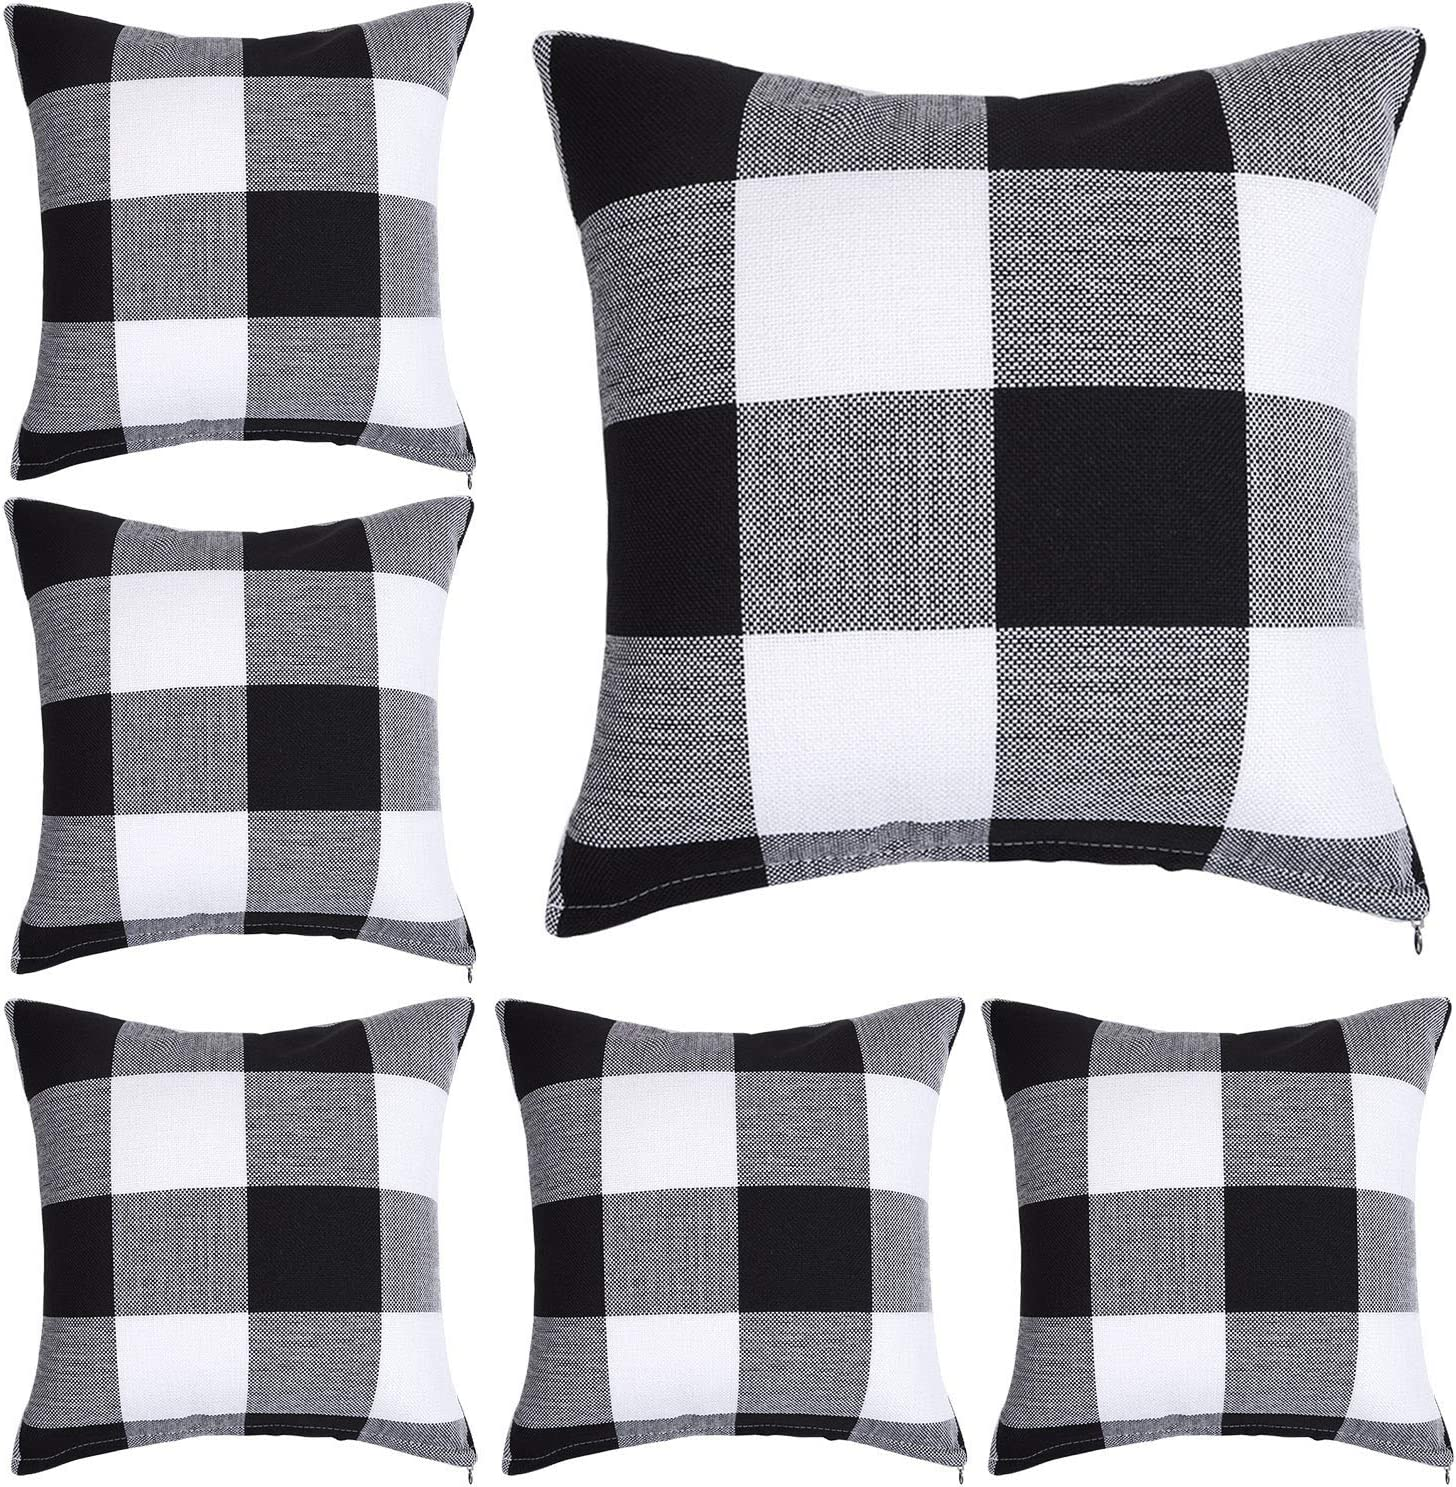 aneco 6 pieces buffalo plaid pillow covers white and black plaid pillow cases square decorative pillow covers 18 x 18 inches